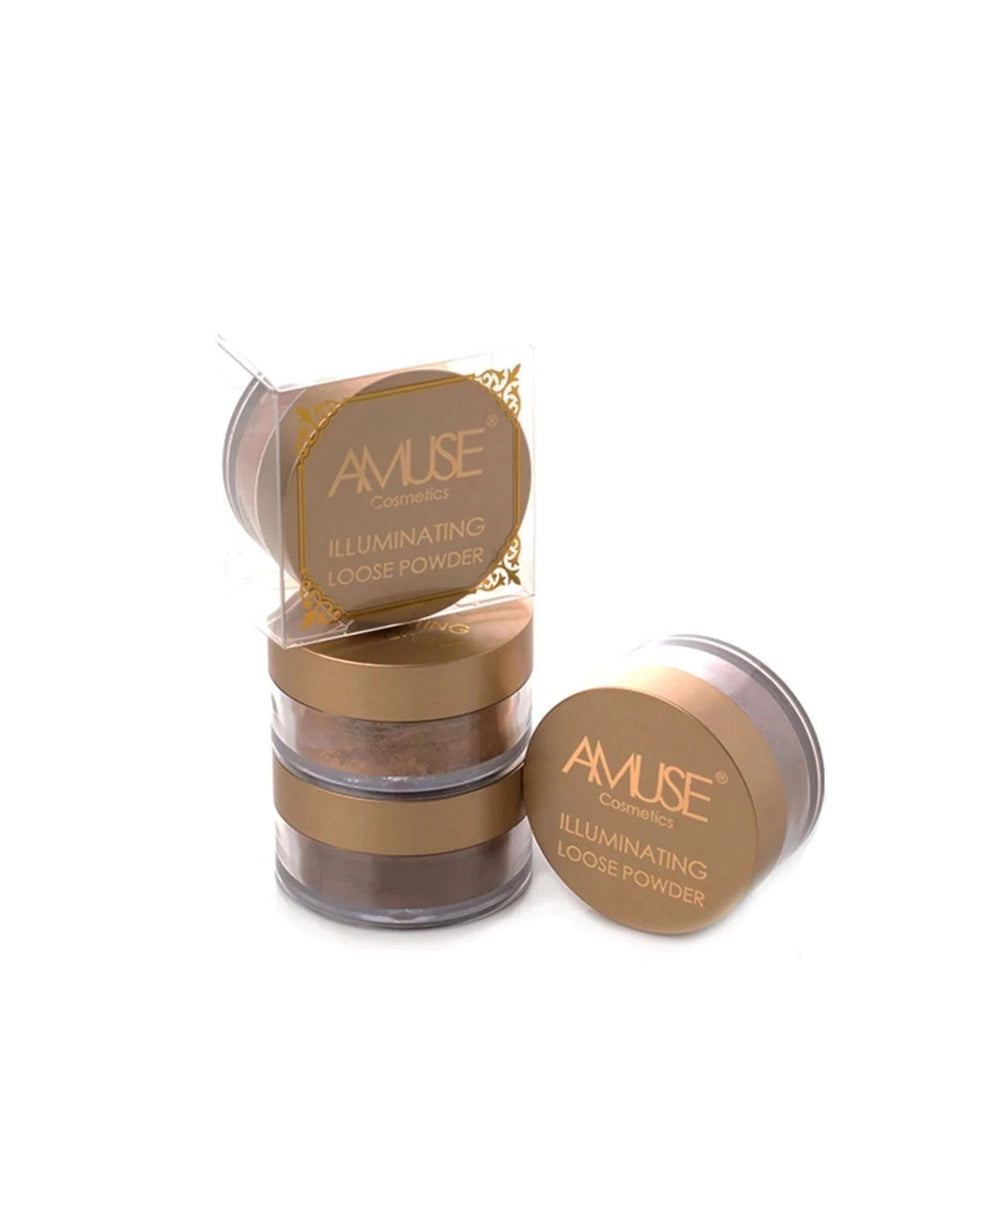 Amuse Illuminating Loose Powder